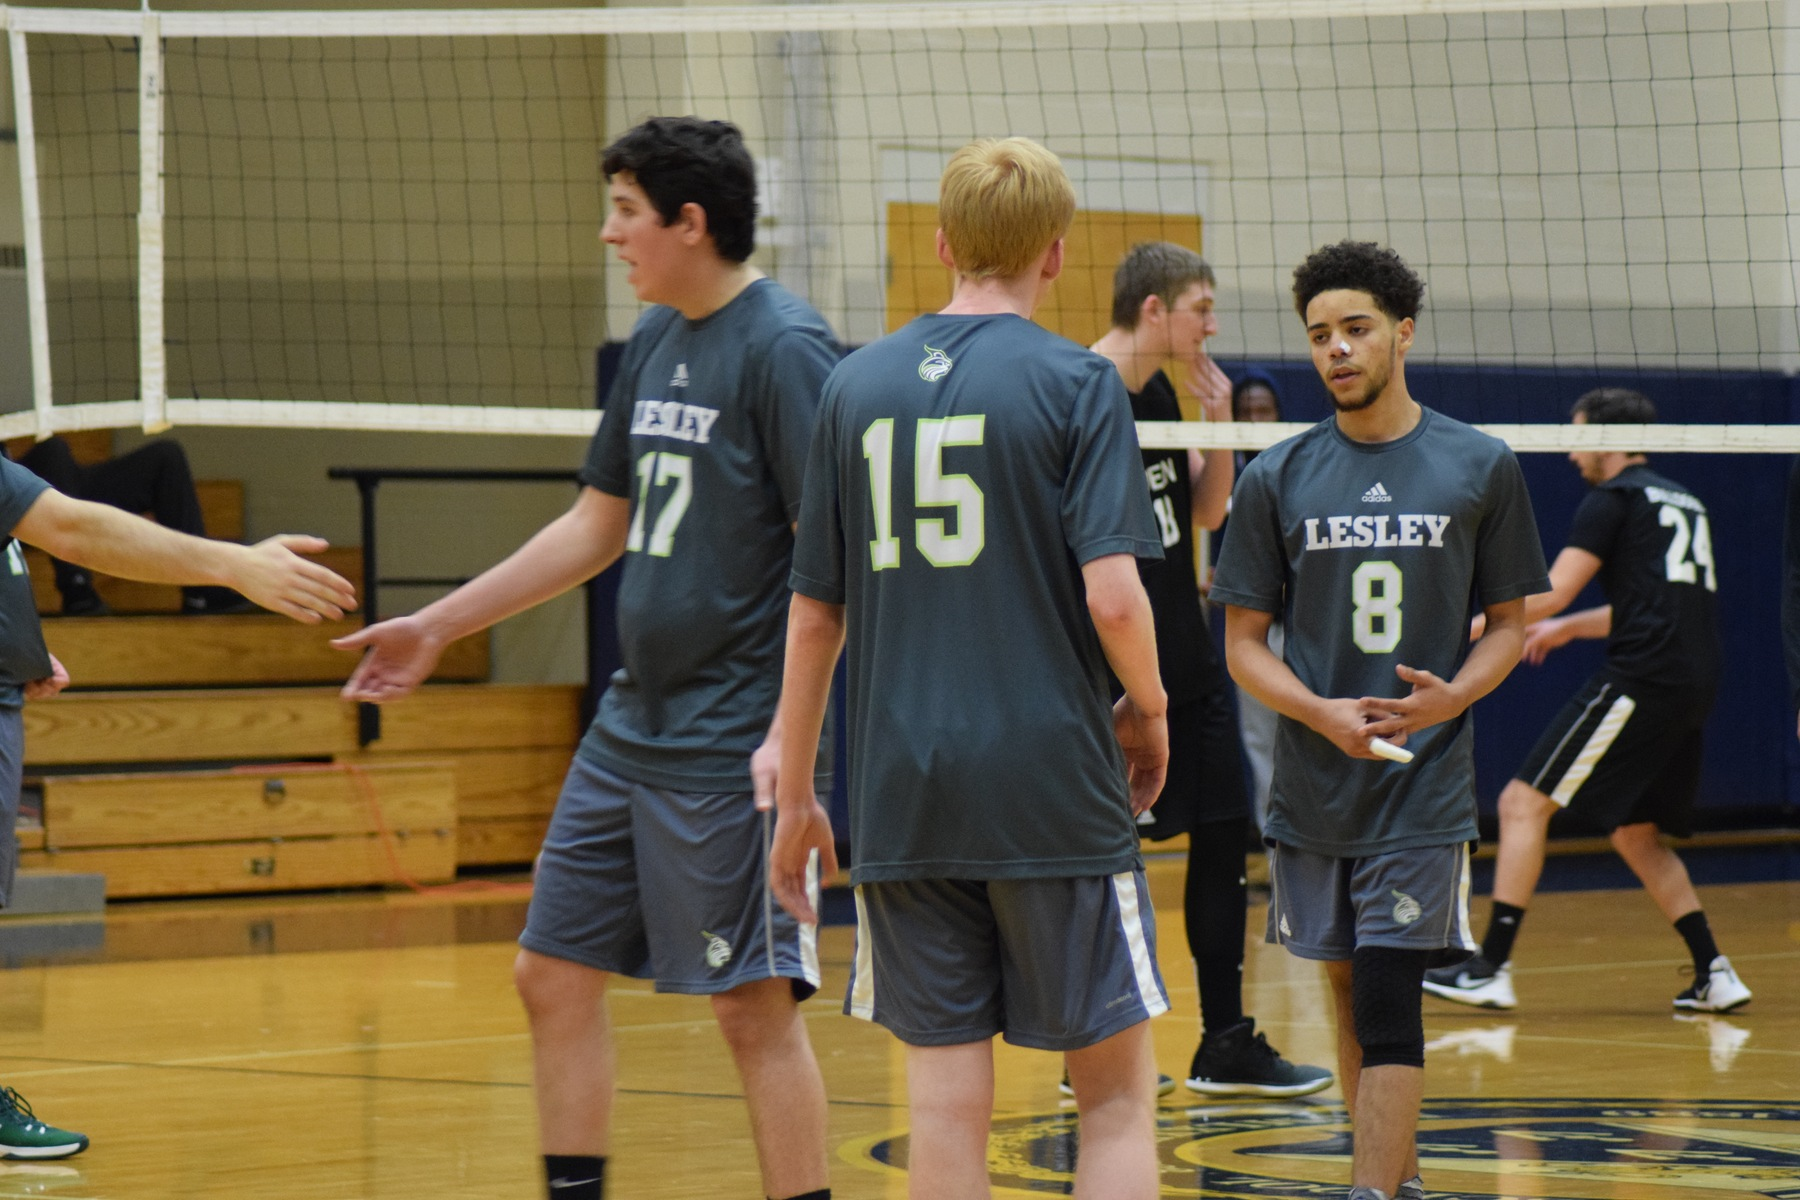 Lynx Drop Third Match of Day at Eastern Nazarene